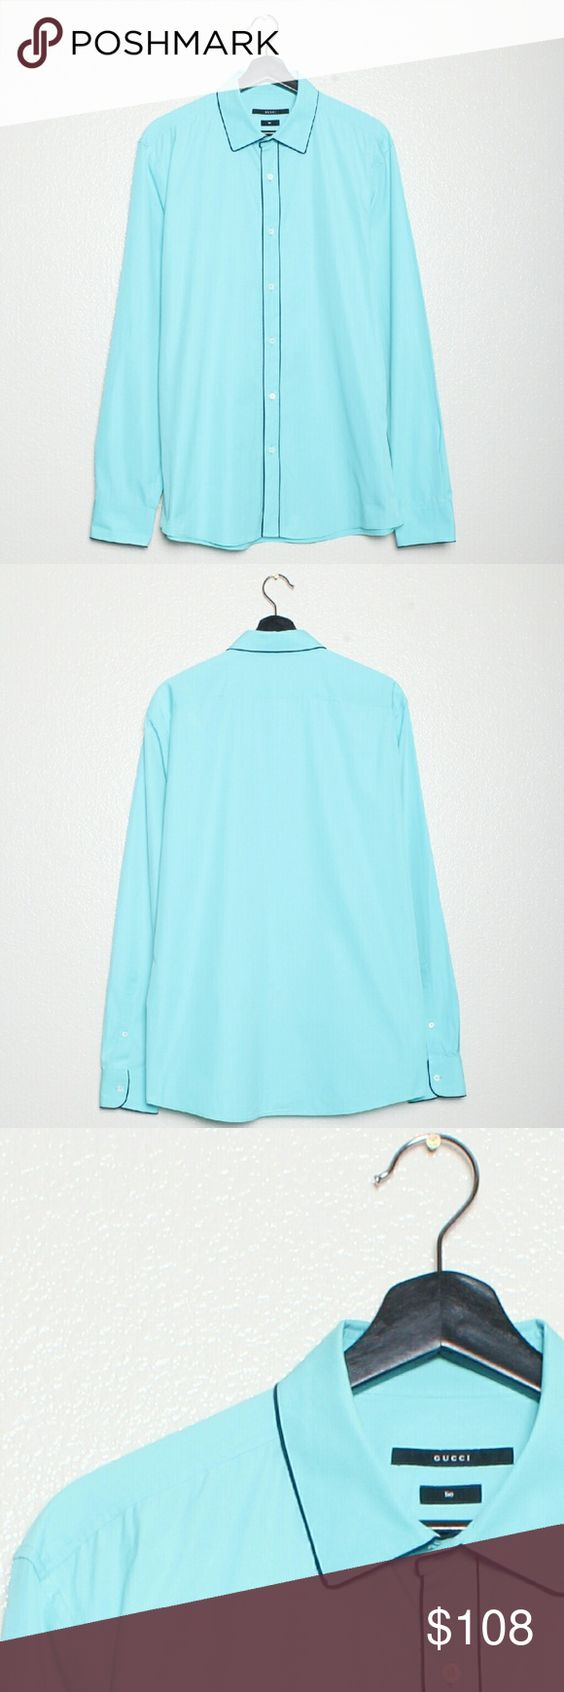 """Gucci Tie Teal Cotton Dress Shirt Size 42 100% Cotton. Measurements: Chest = 46"""", Sleeve = 37.5"""", Length = 30"""", Collar 17"""". Like new condition. Previously worn or washed. Limited to a couple of times. Gucci Shirts Dress Shirts"""